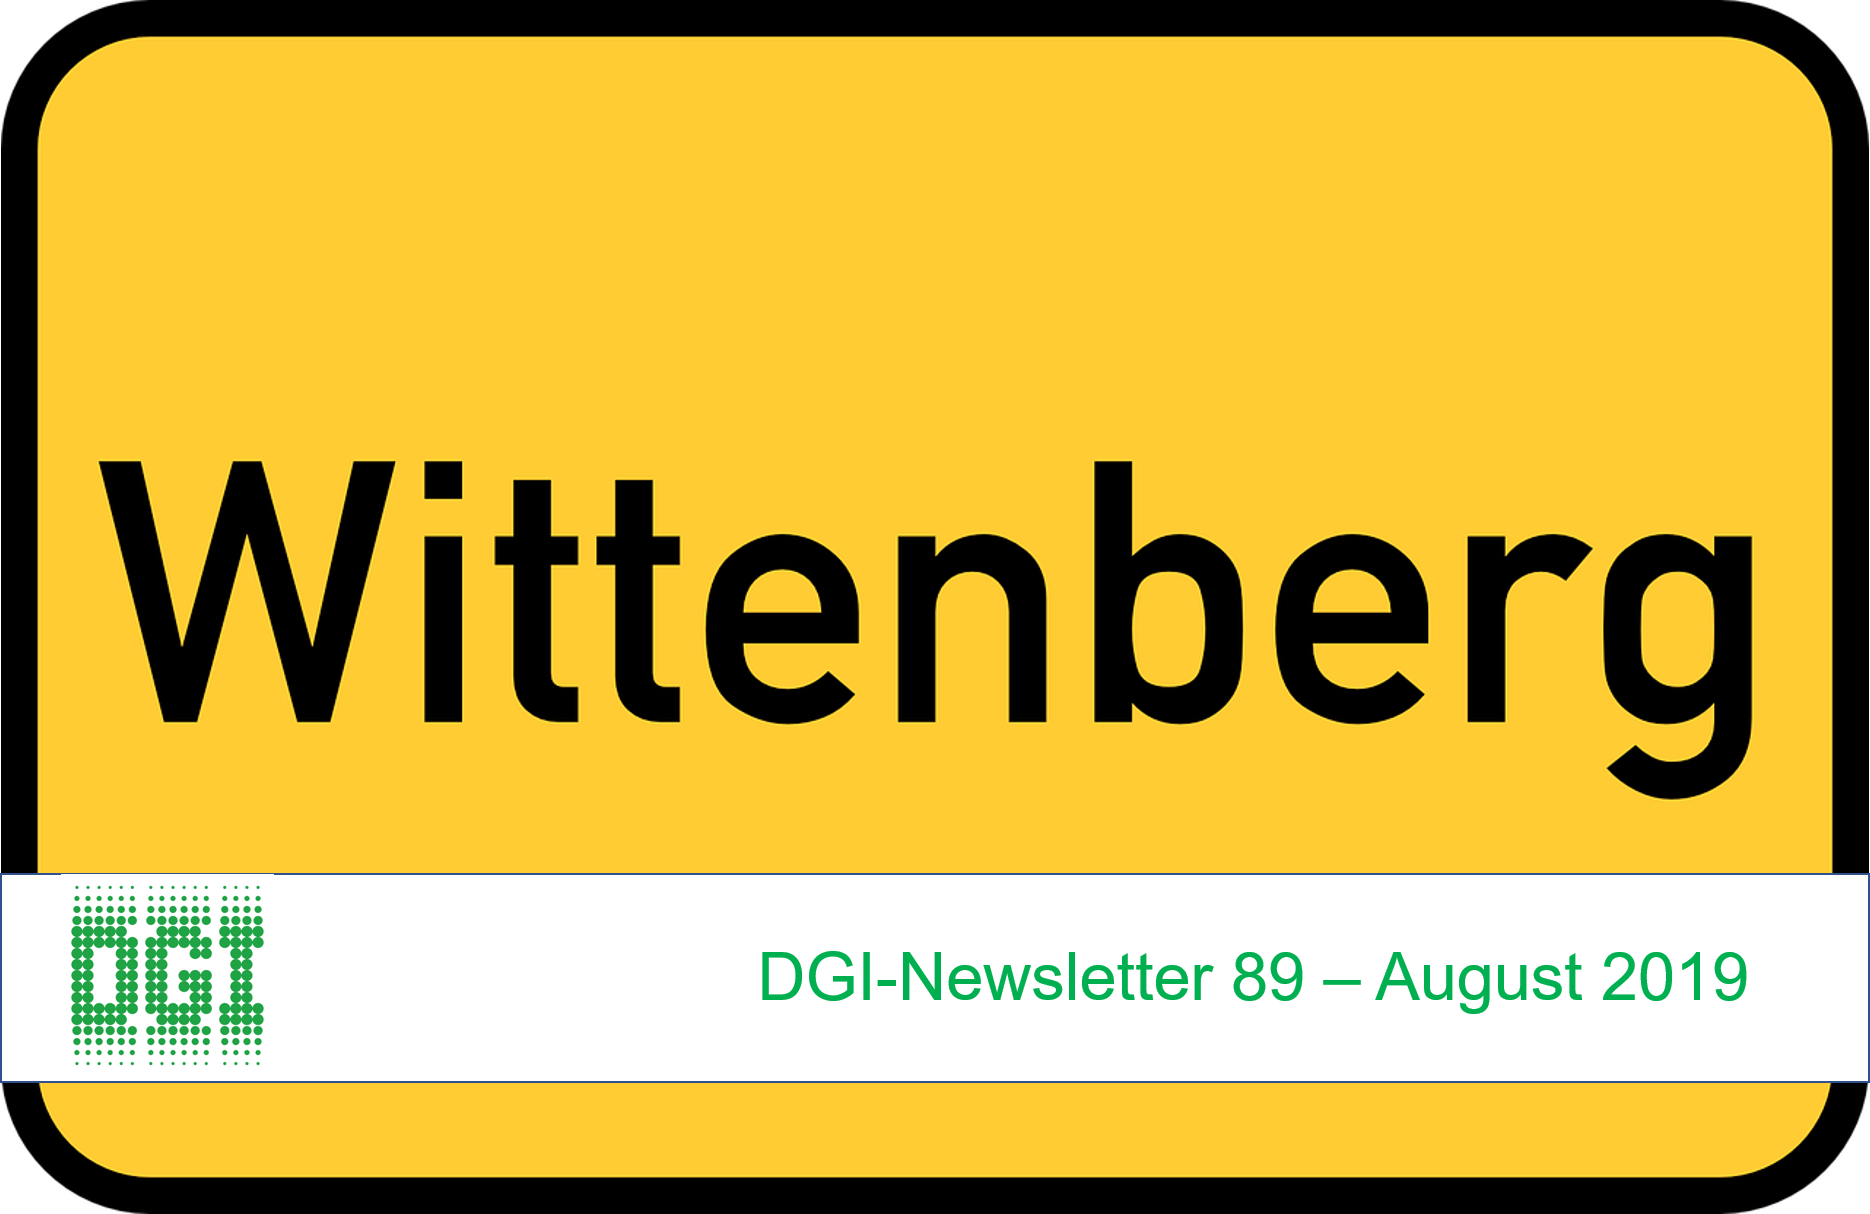 DGI-Newsletter 89  – August 2019